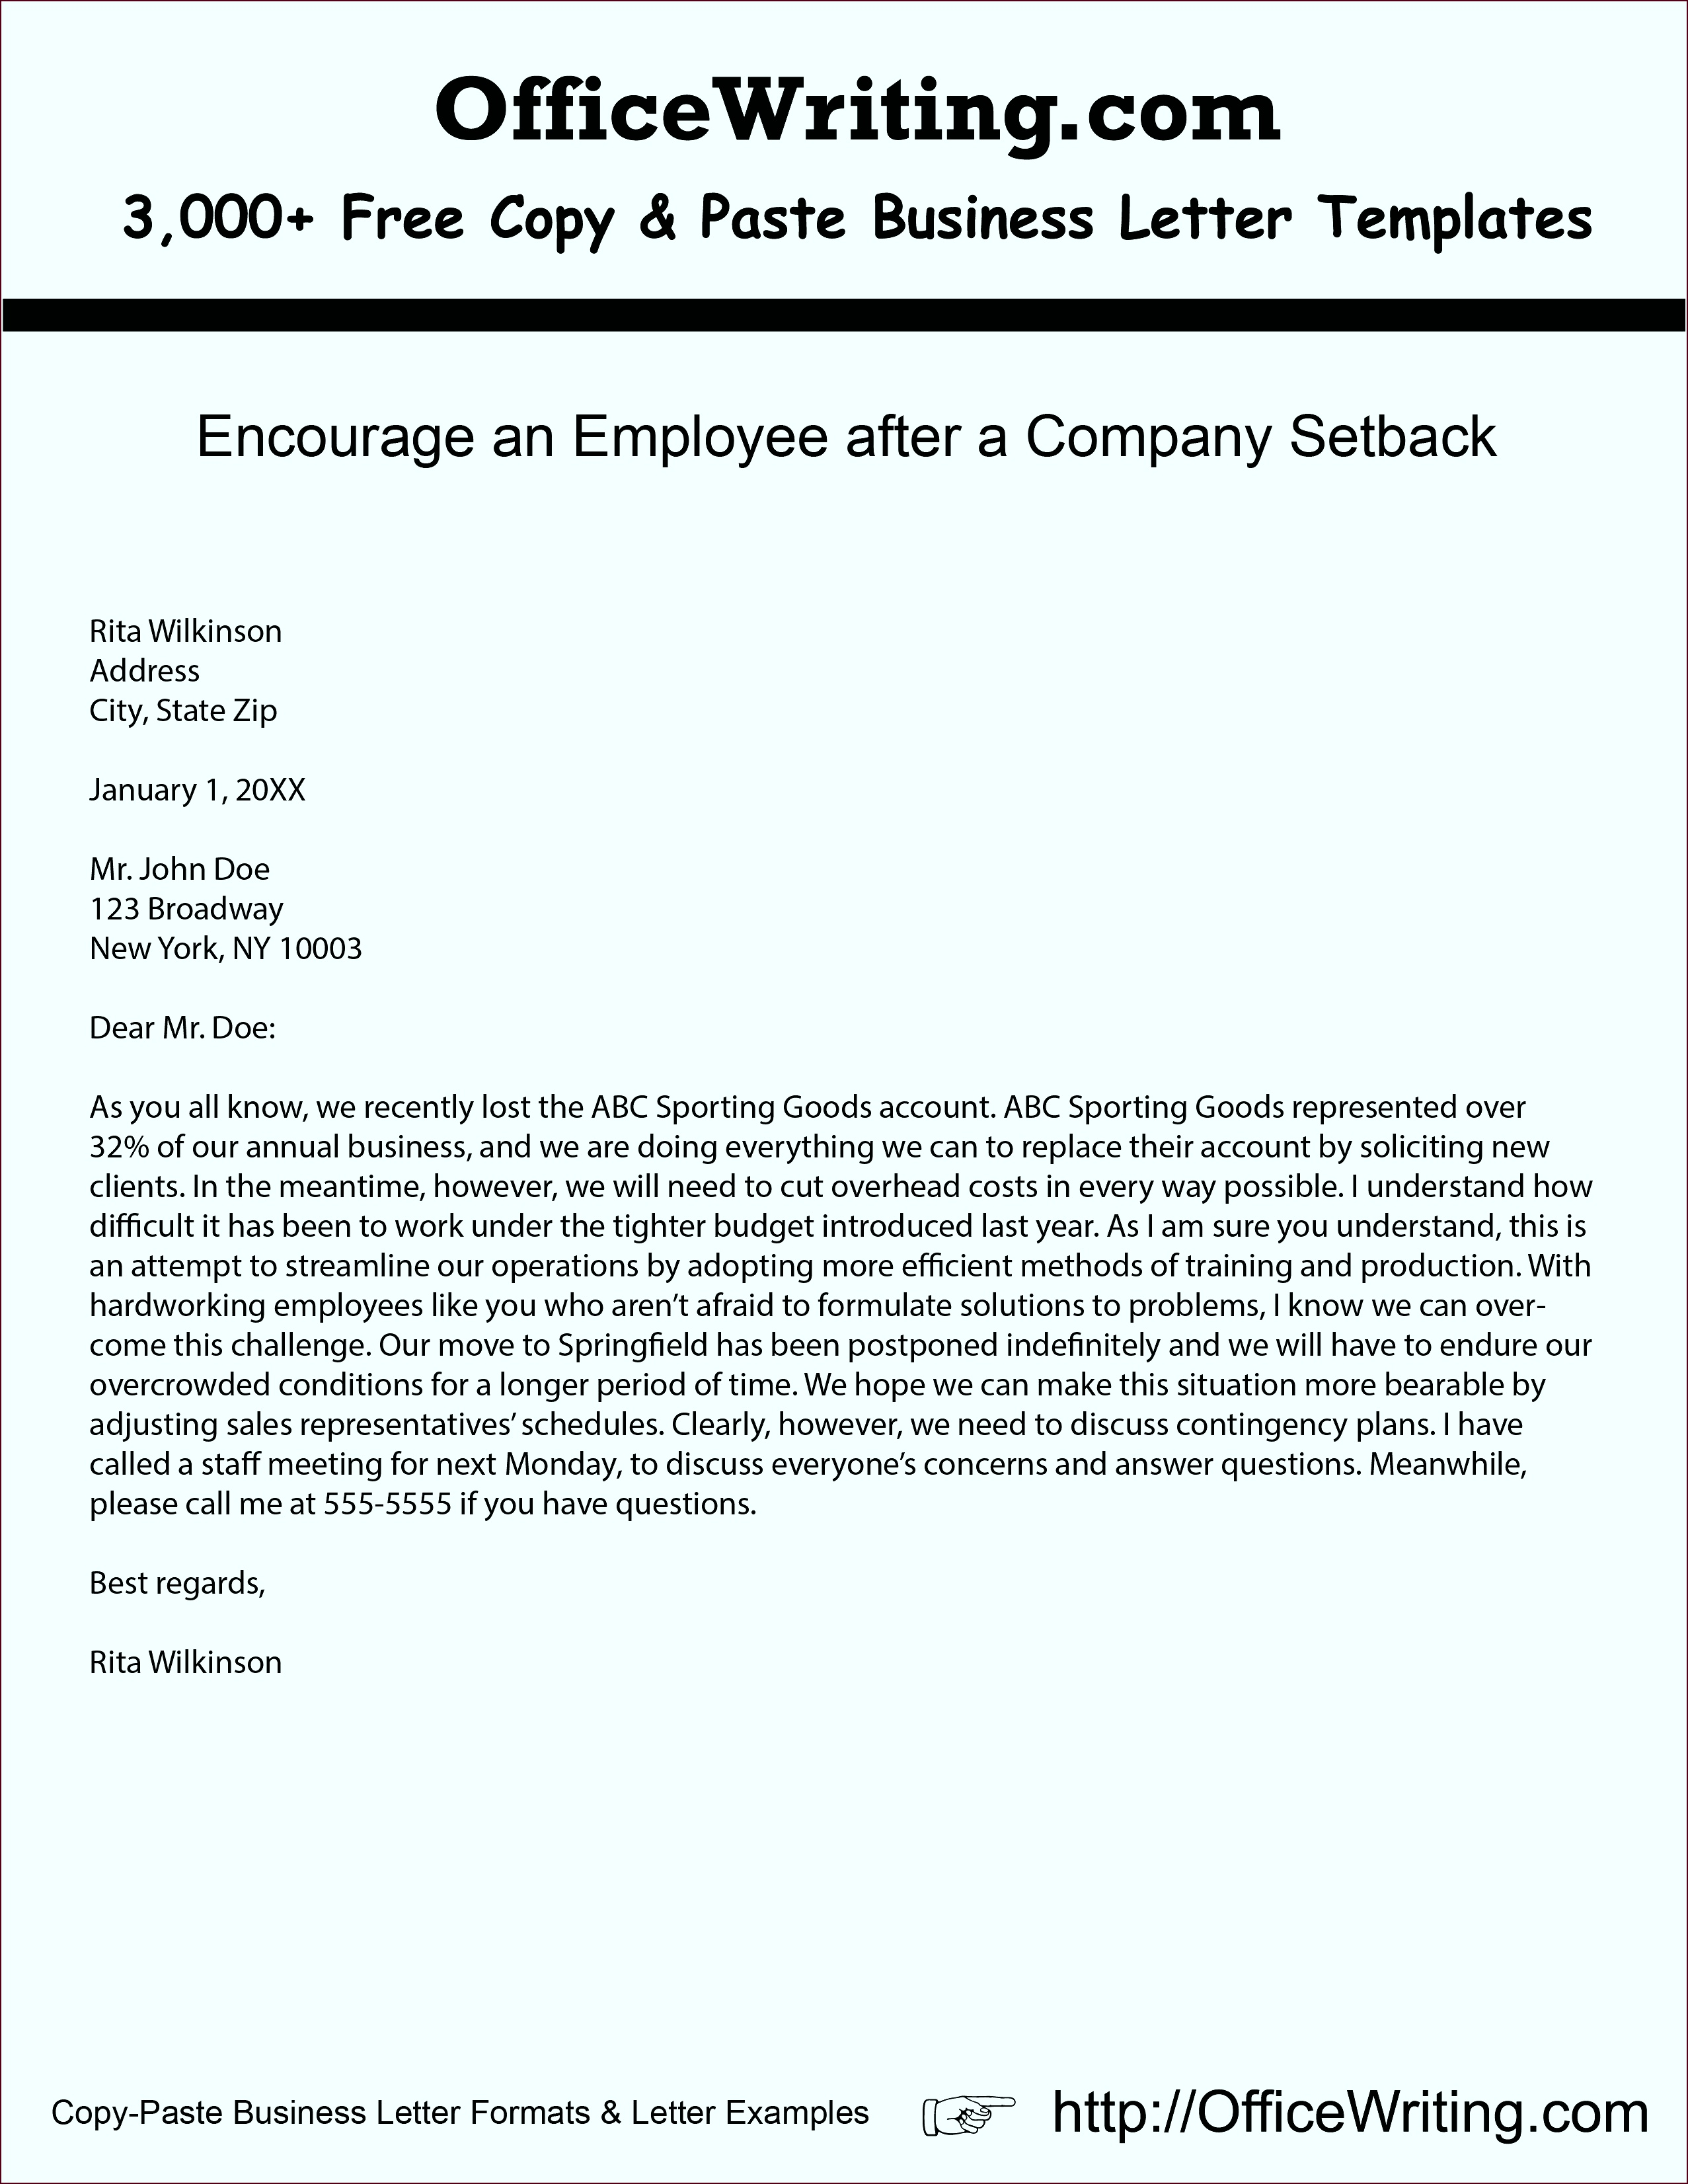 Letter Templates Unique Encourage An Employee after A Pany Setback Ficewriting Letter Templates Unique Example oiaee